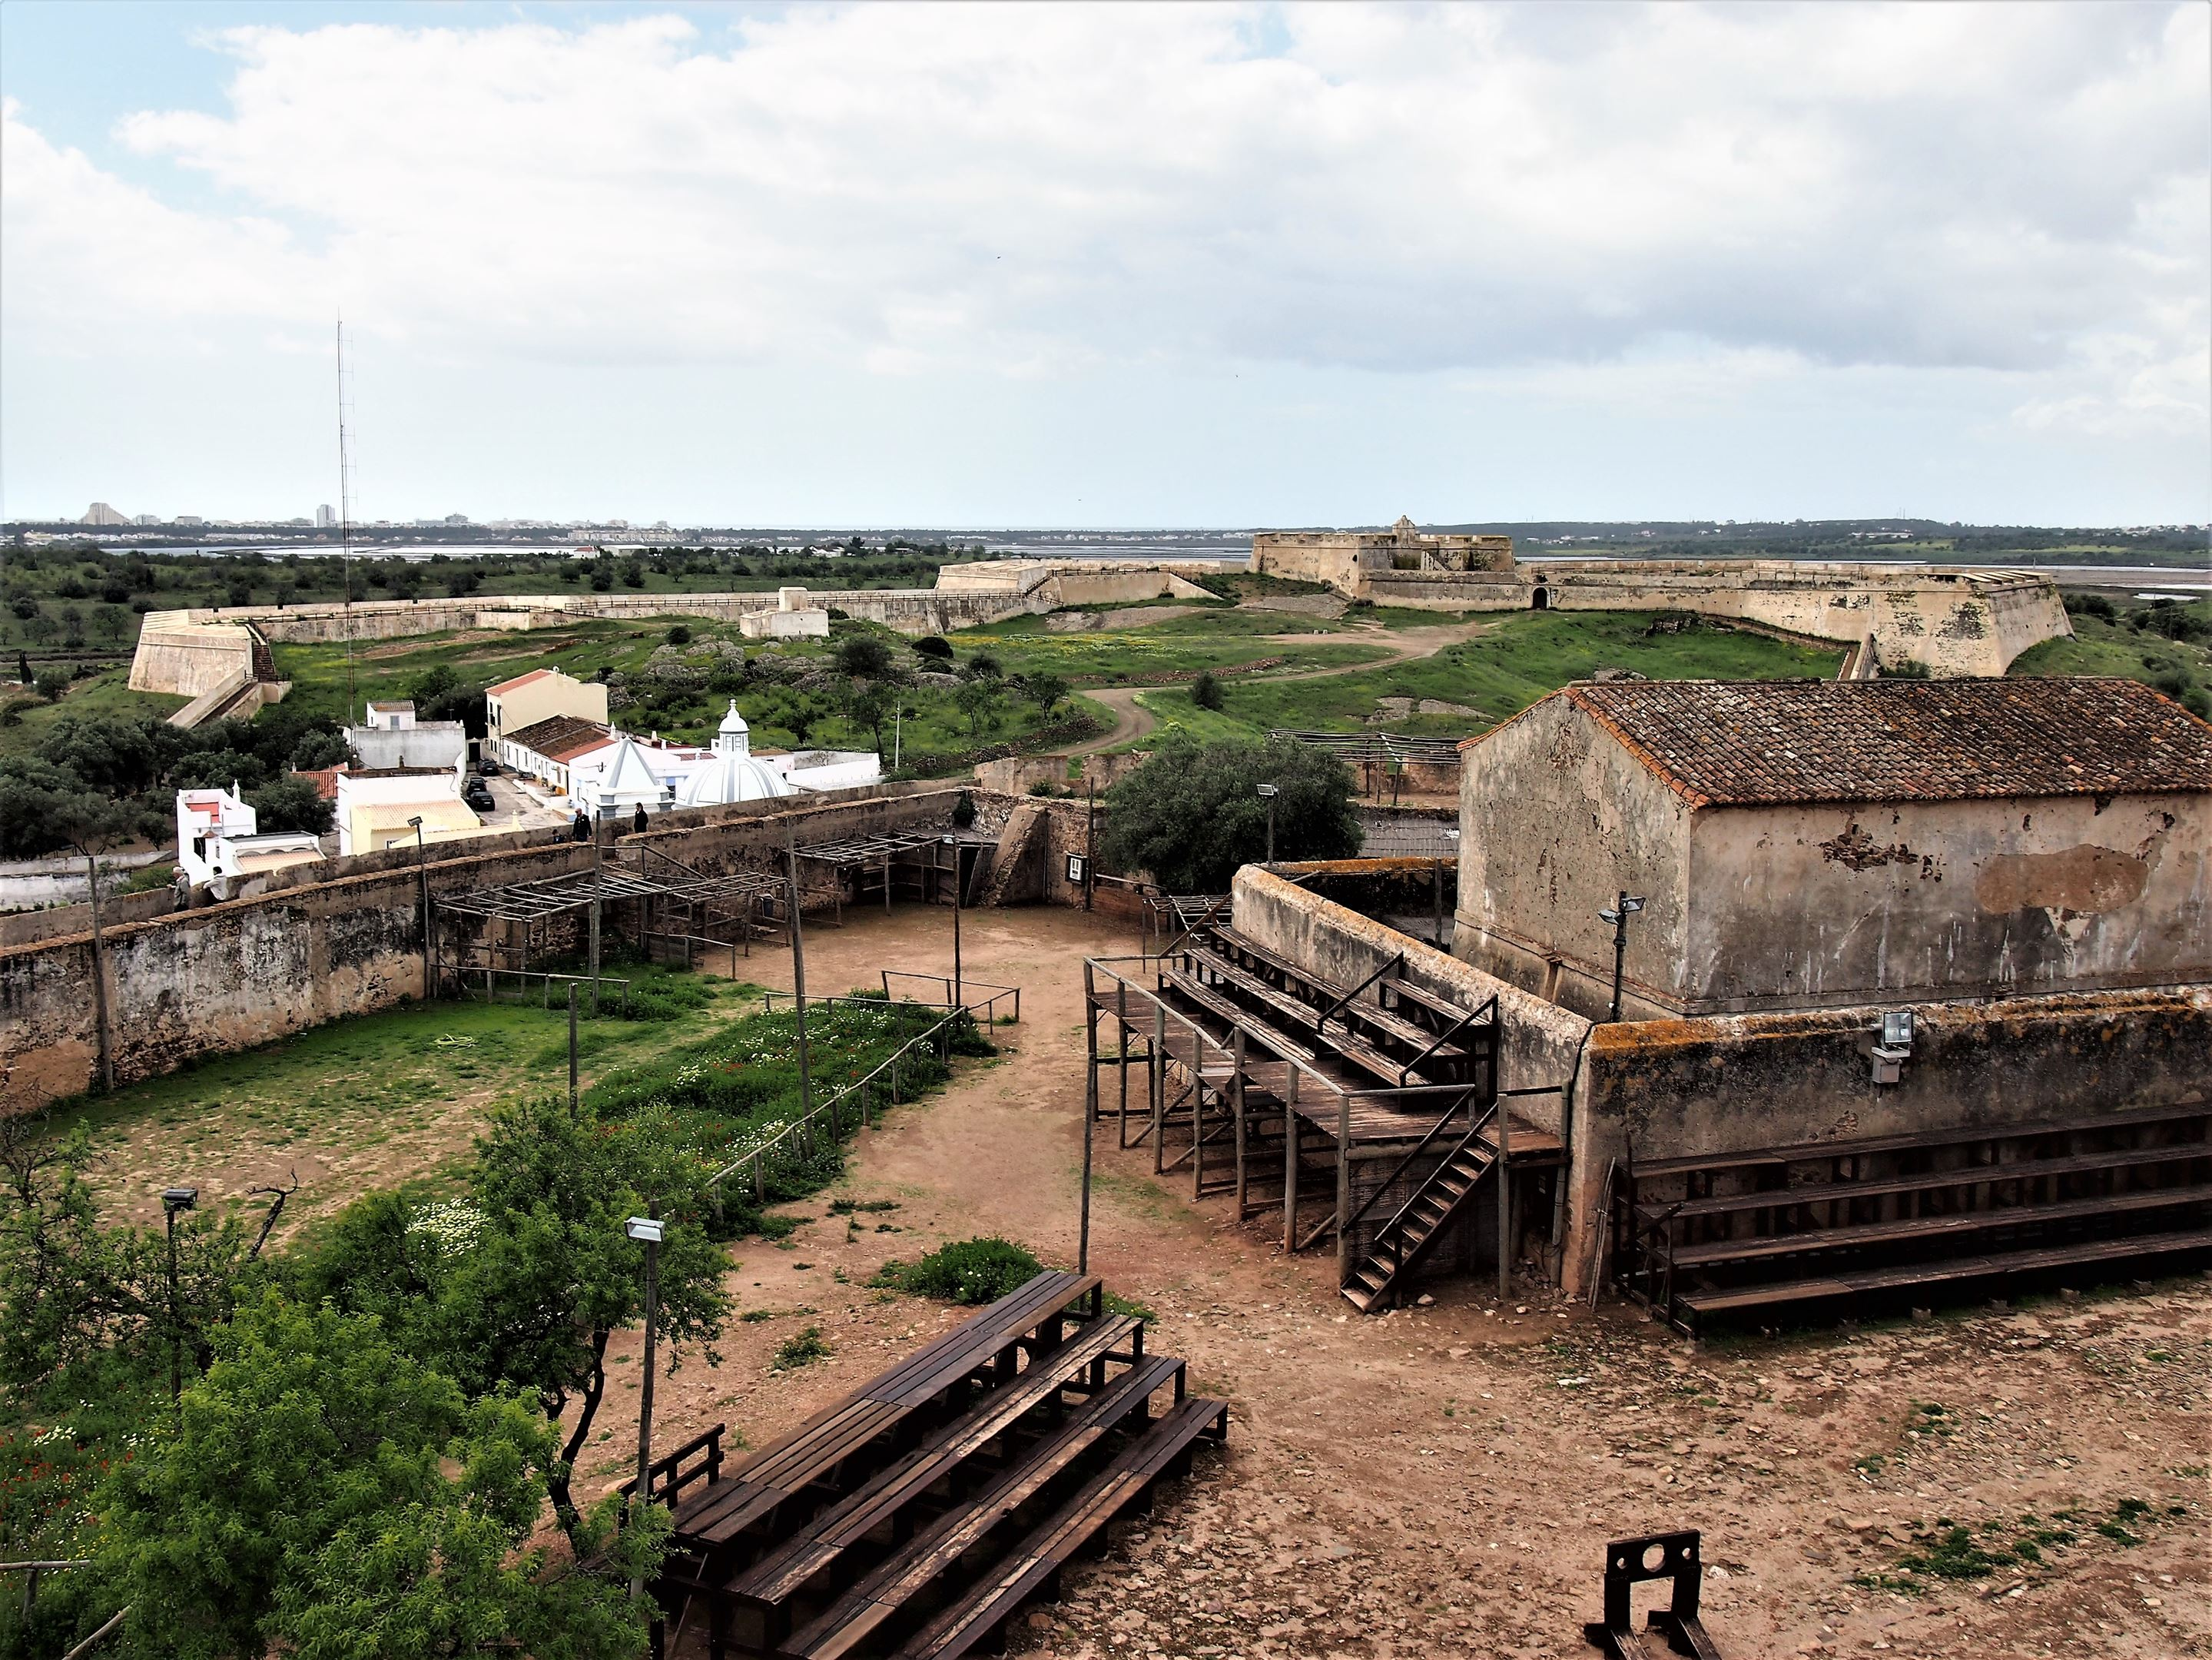 The Fort of São Sebastião in the background, with buildings inside Castro Marim castle below